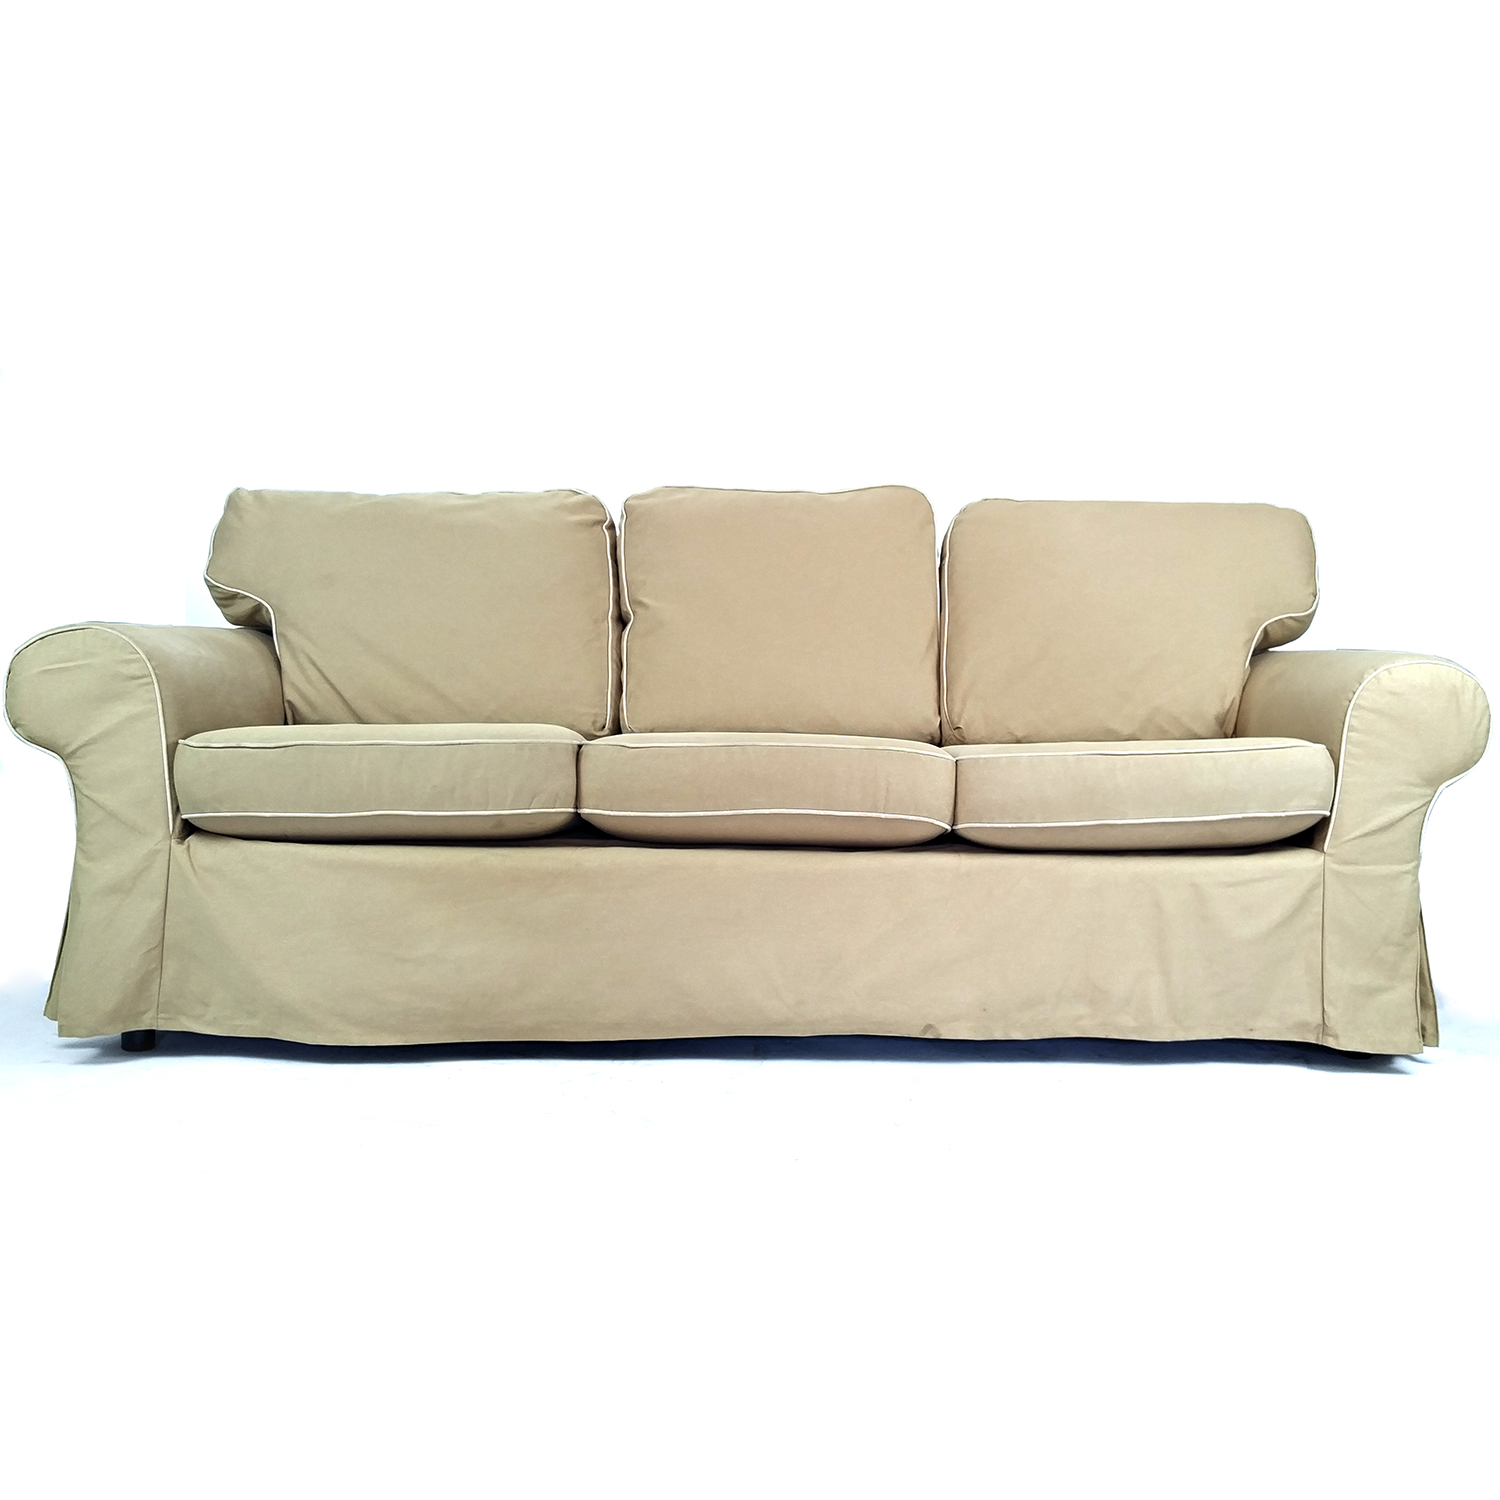 72 sofa cover modern set designs malaysia canvas indoor outdoor furniture made from salvaged